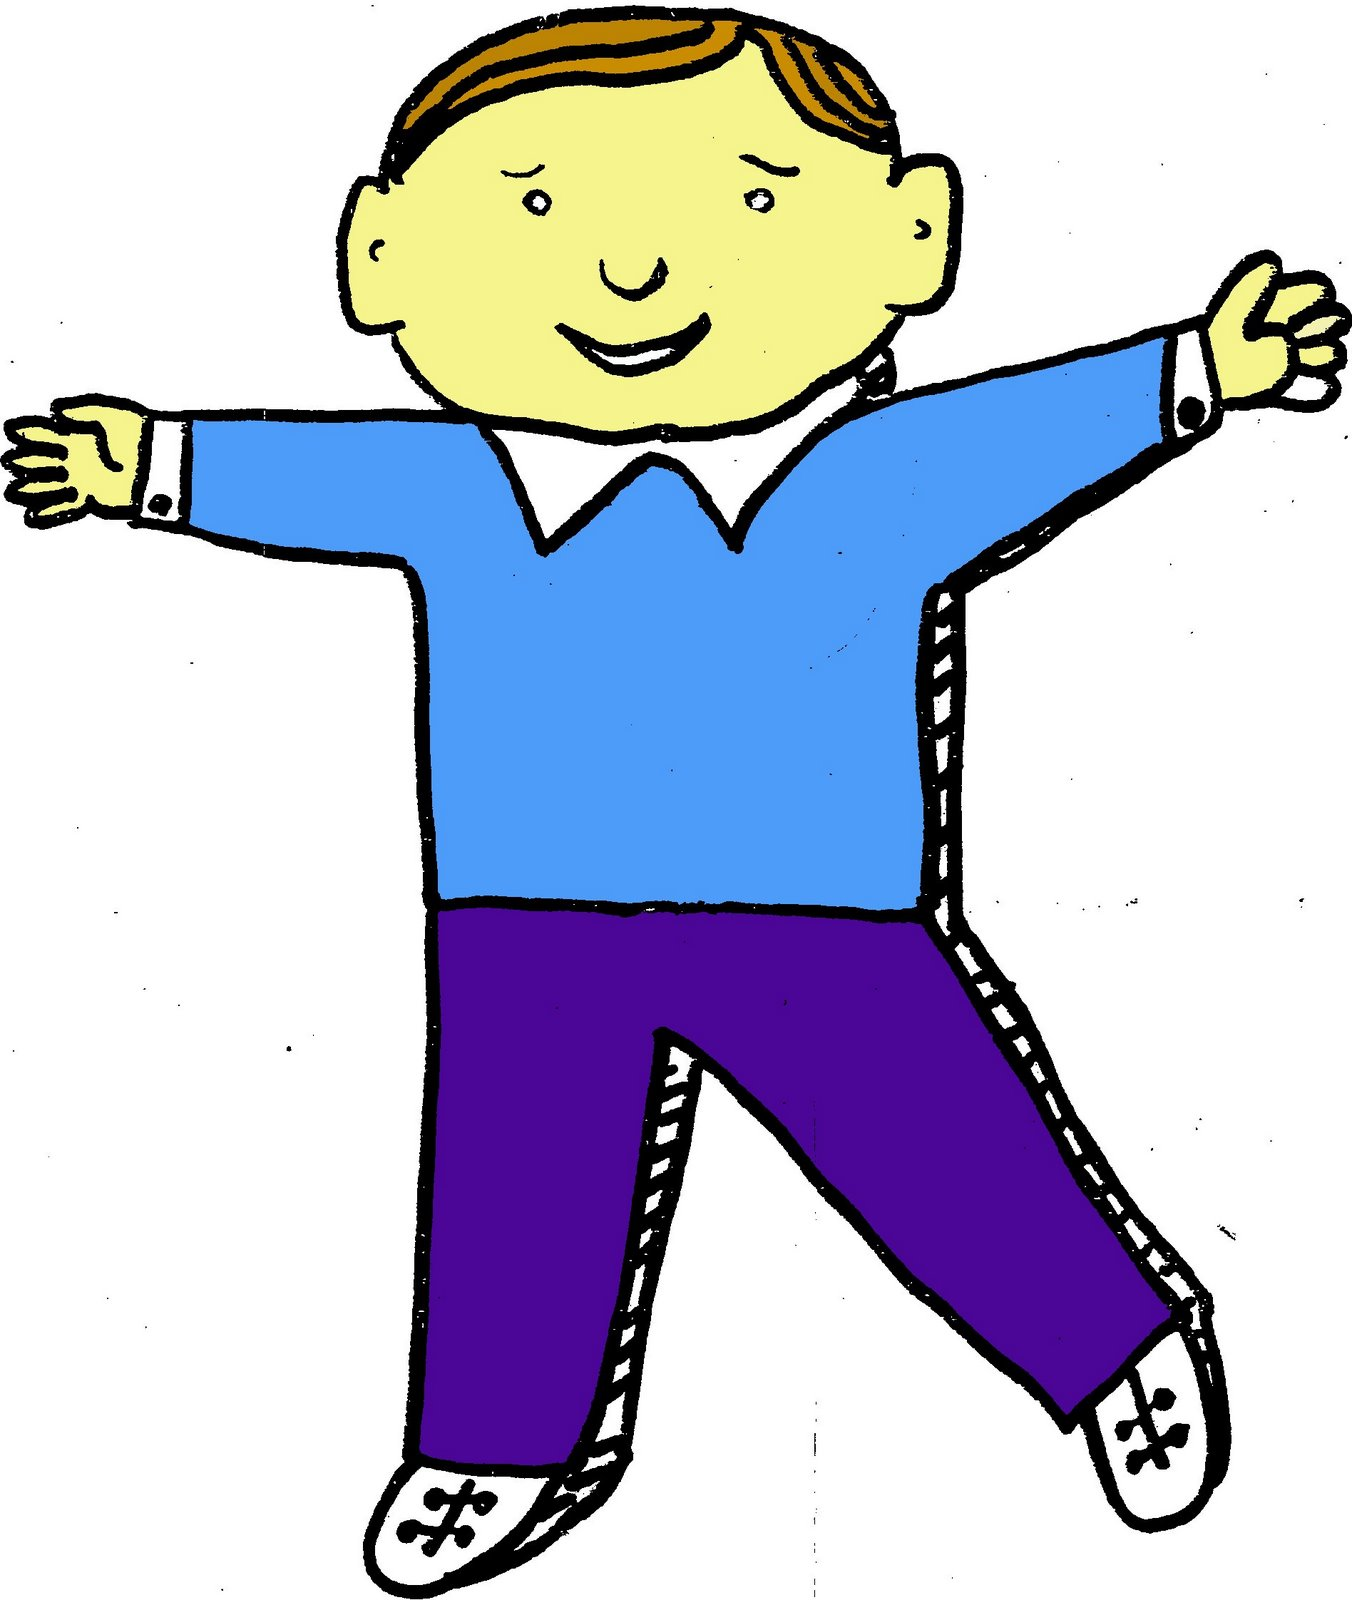 hight resolution of flat stanley clipart 1368289 license personal use